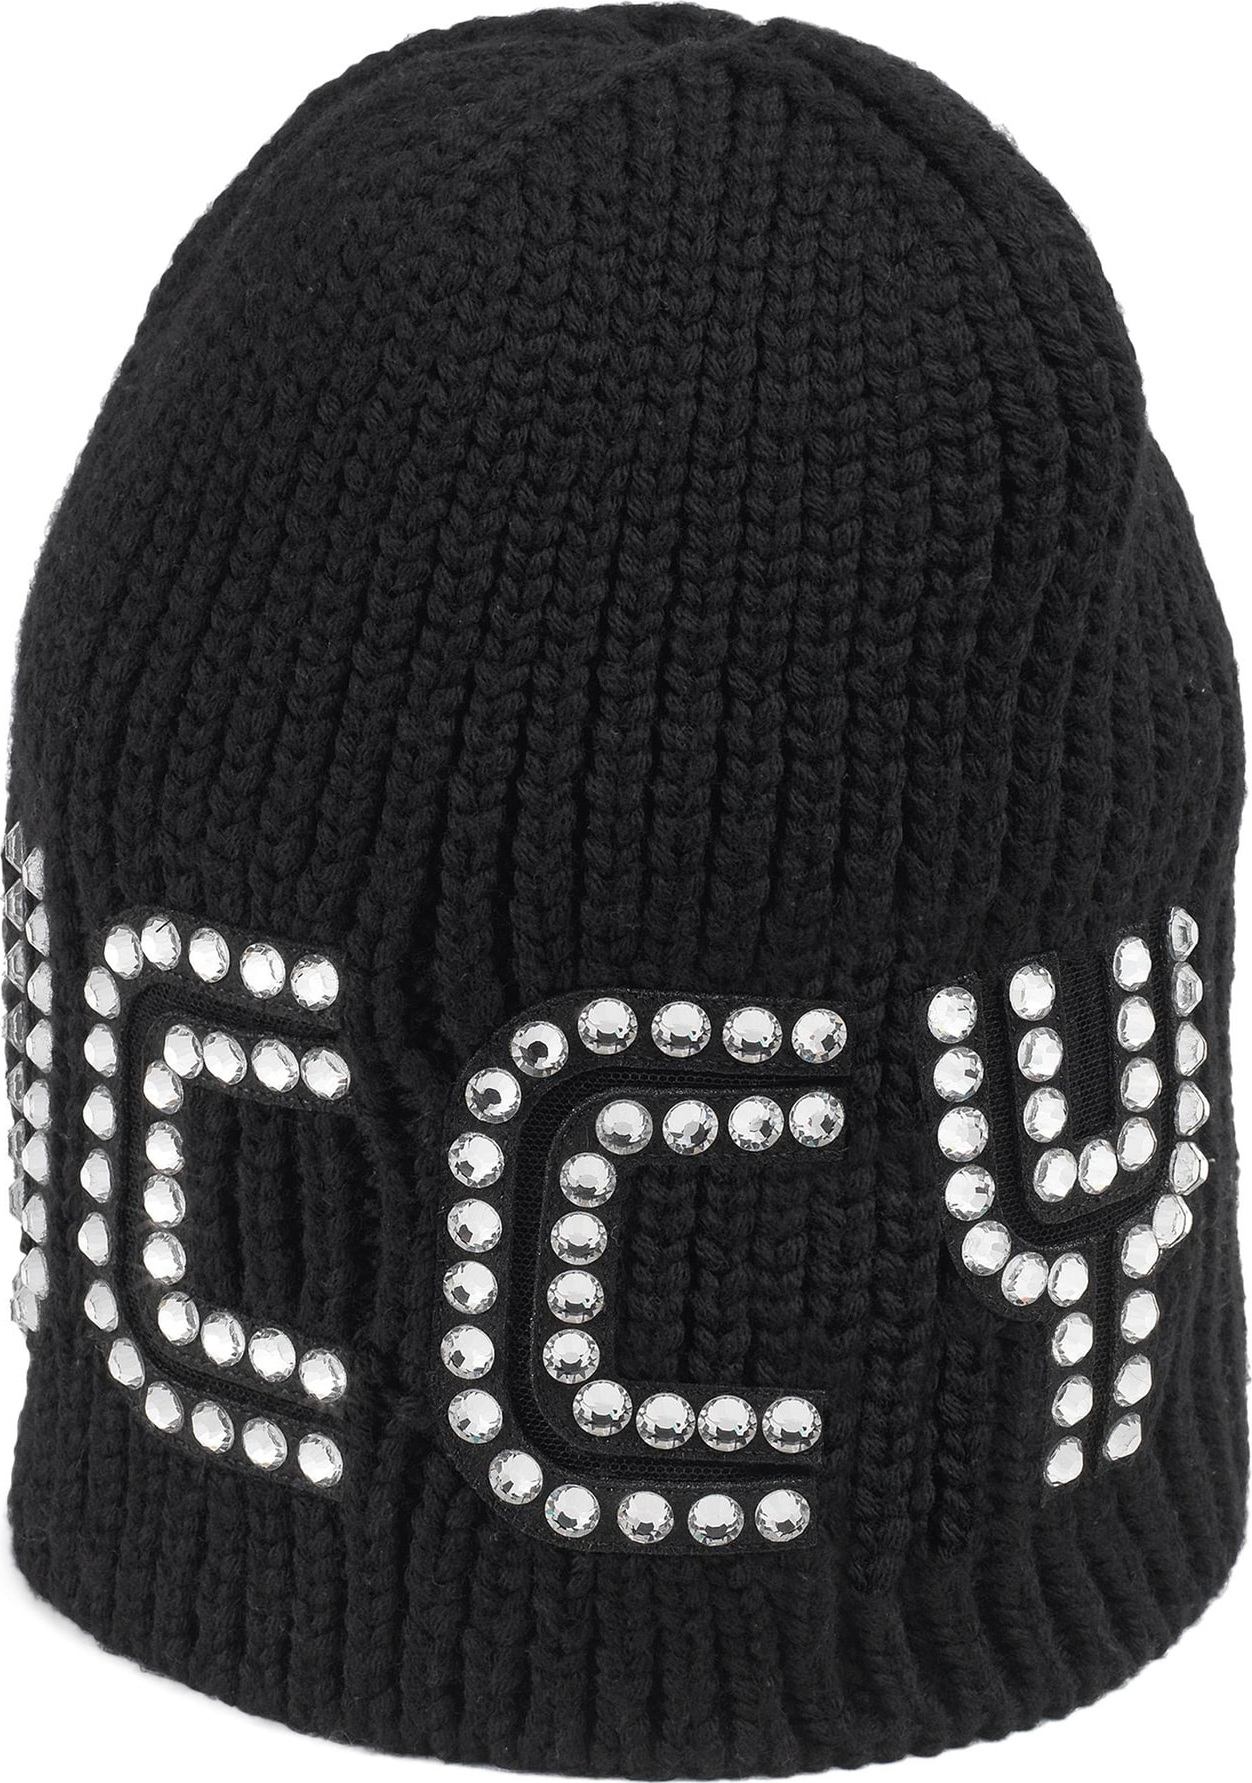 d898864d9 Gucci Guccy Game Sparkle Beanie - Mkt